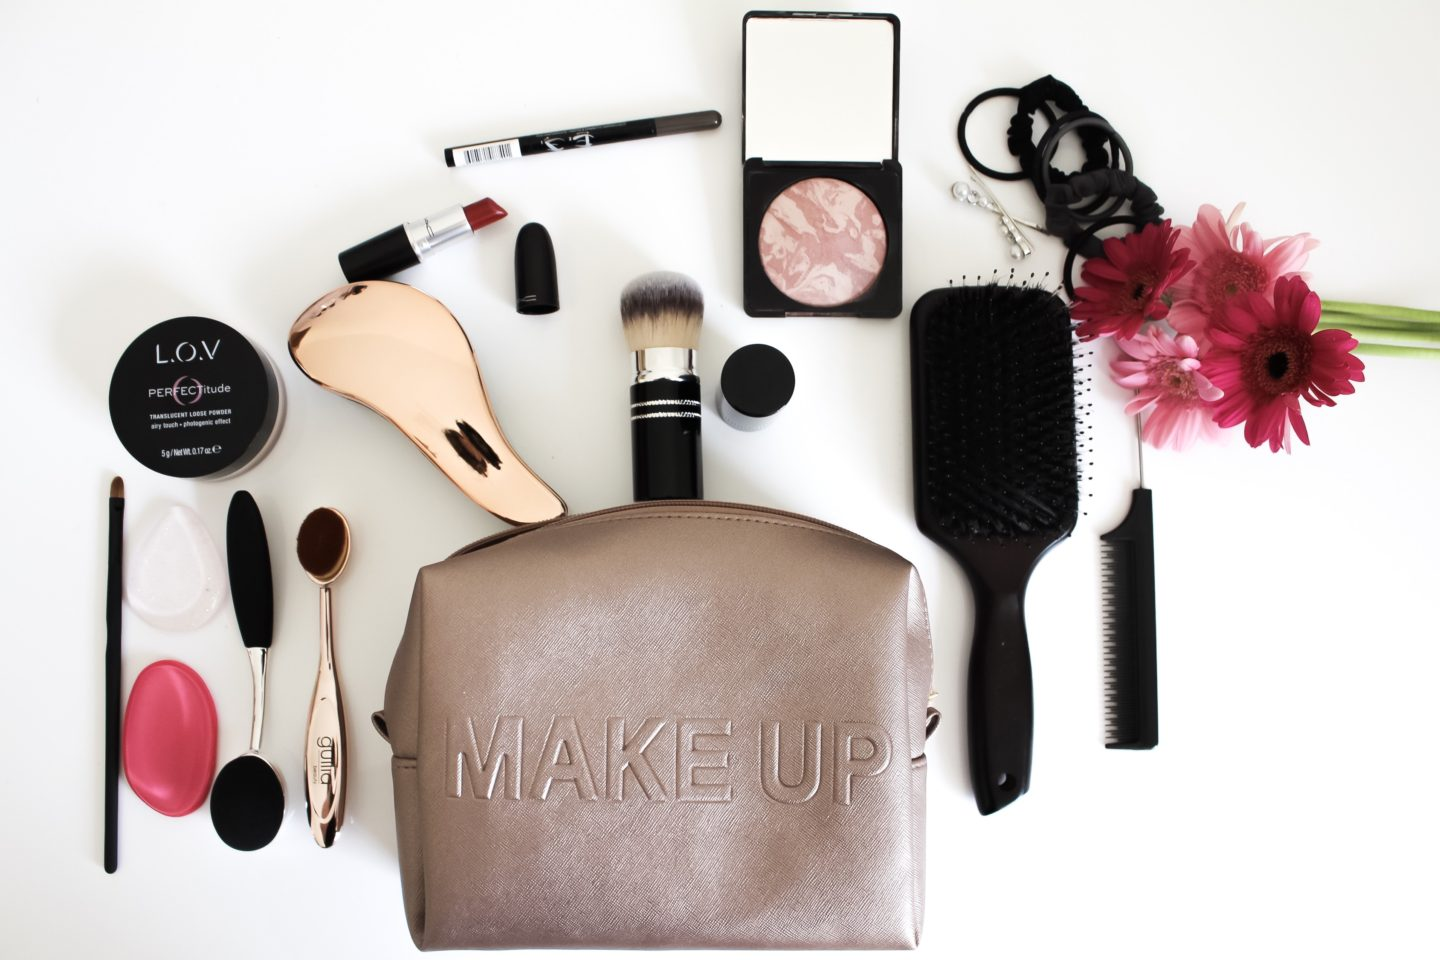 Miss-Suzie-Loves-Beauty-Flatlay-Incase-Beauty-Giulia-Oakland-Urlaubsessentials-Beauty-Packliste-Susanne-Heidebach-1